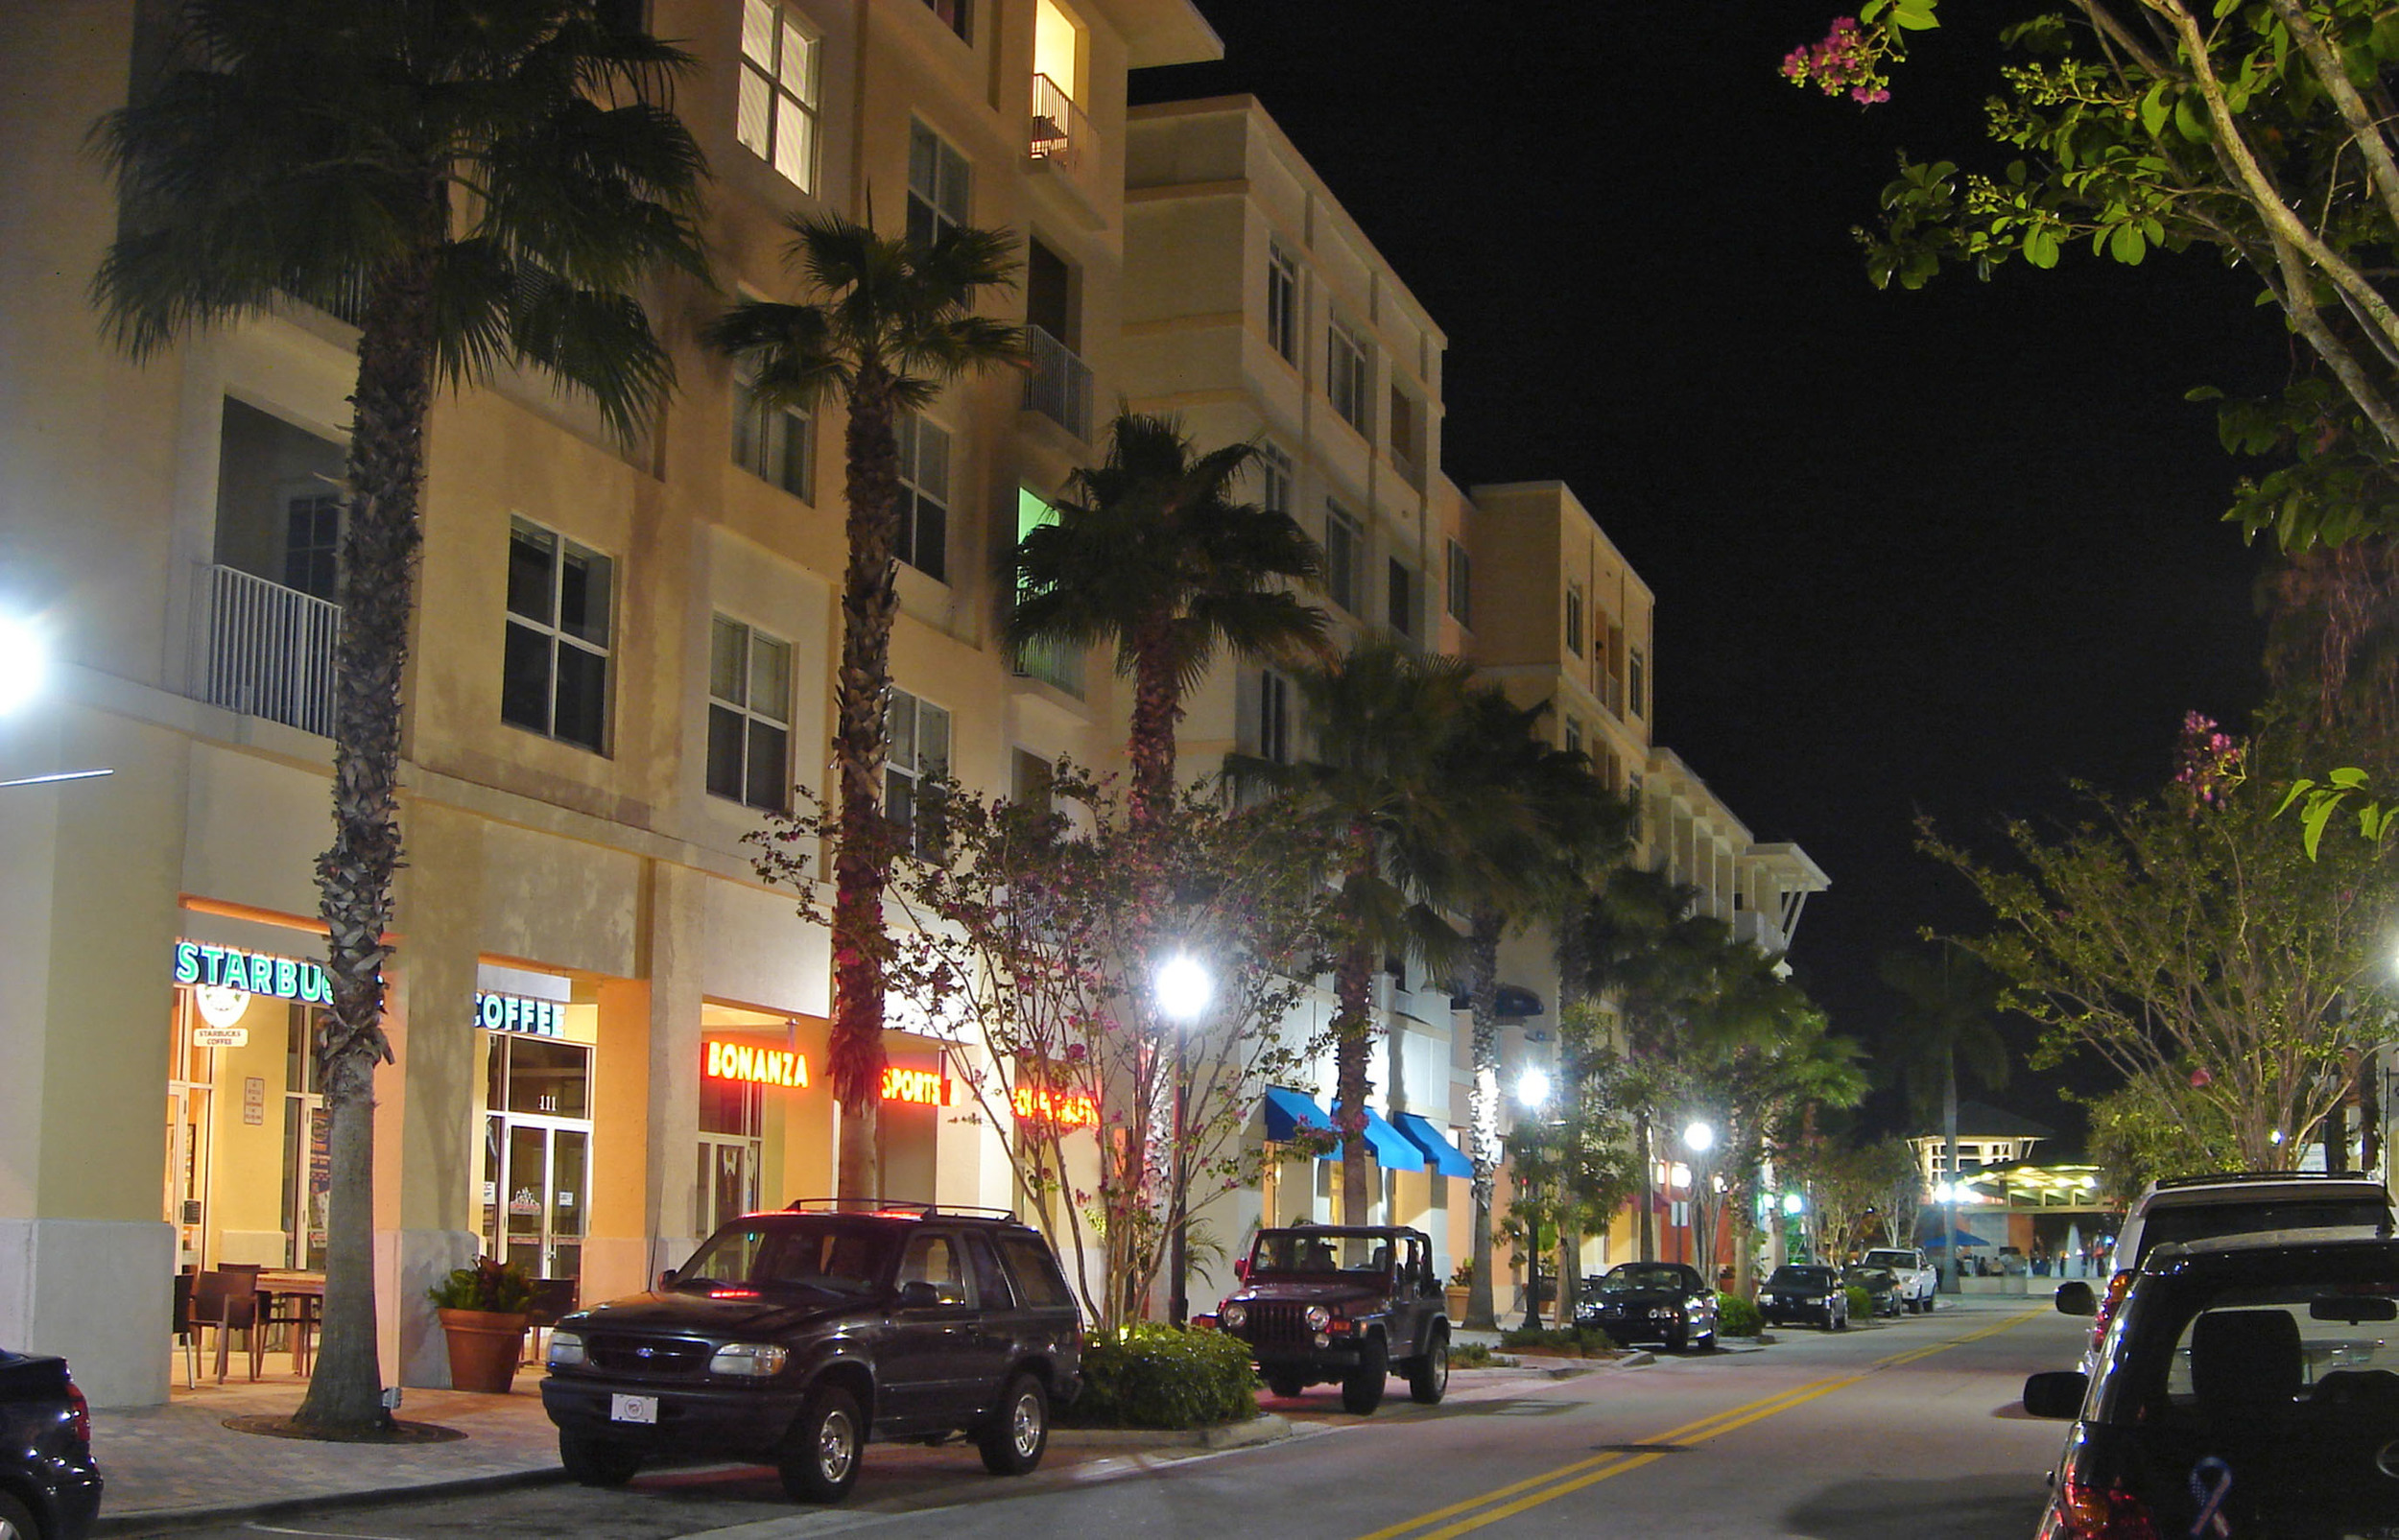 Abacoa Town Center Jupiter Florida Lively Night Streetscape.jpg